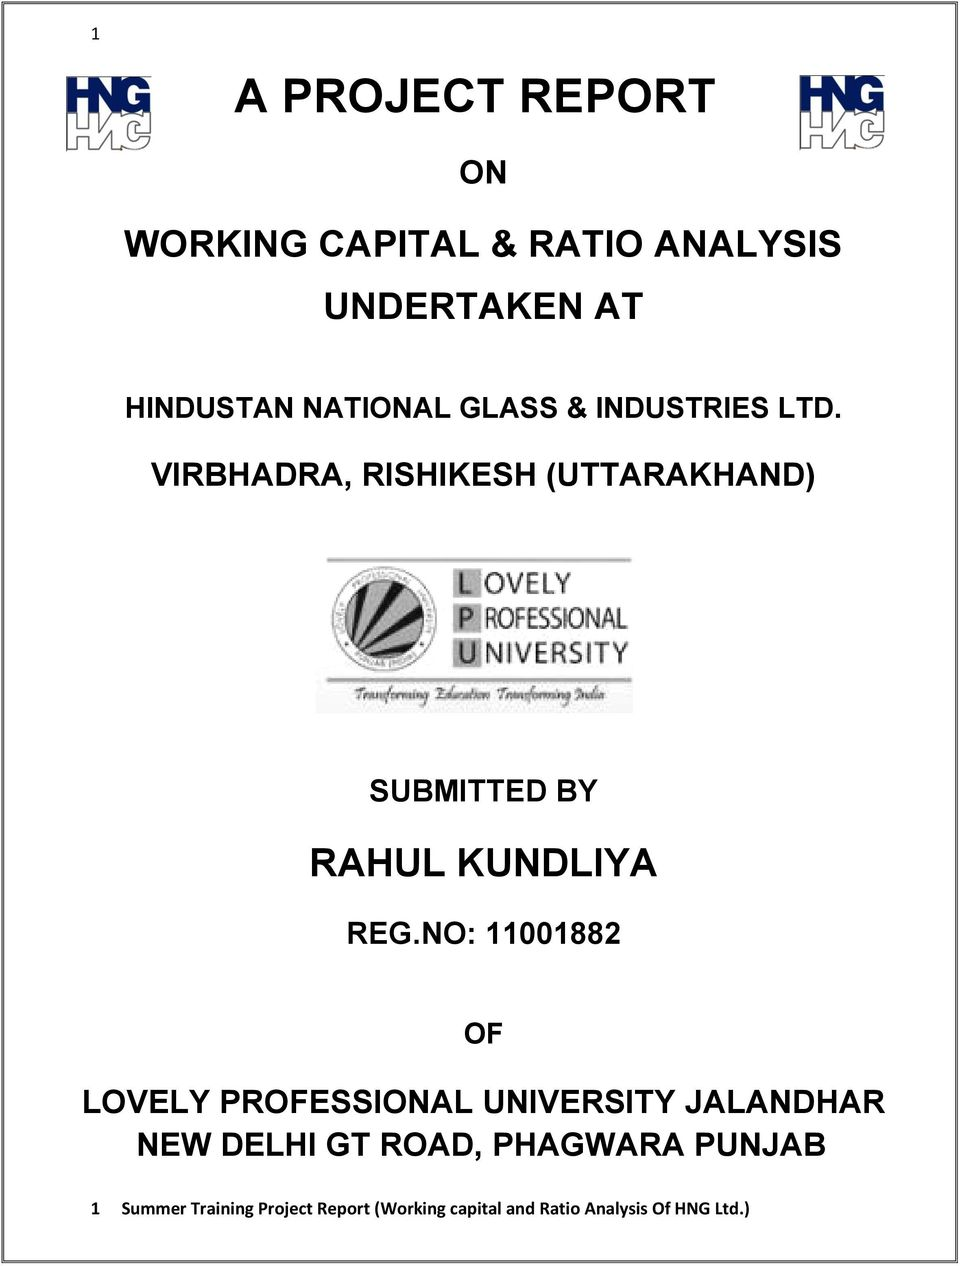 managing working capital final essay Impact of working capital management in the profitability of hindalco industries limited j p singh and shishir pandey for the successful working of any business organization, fixed and current assets play a vital role.